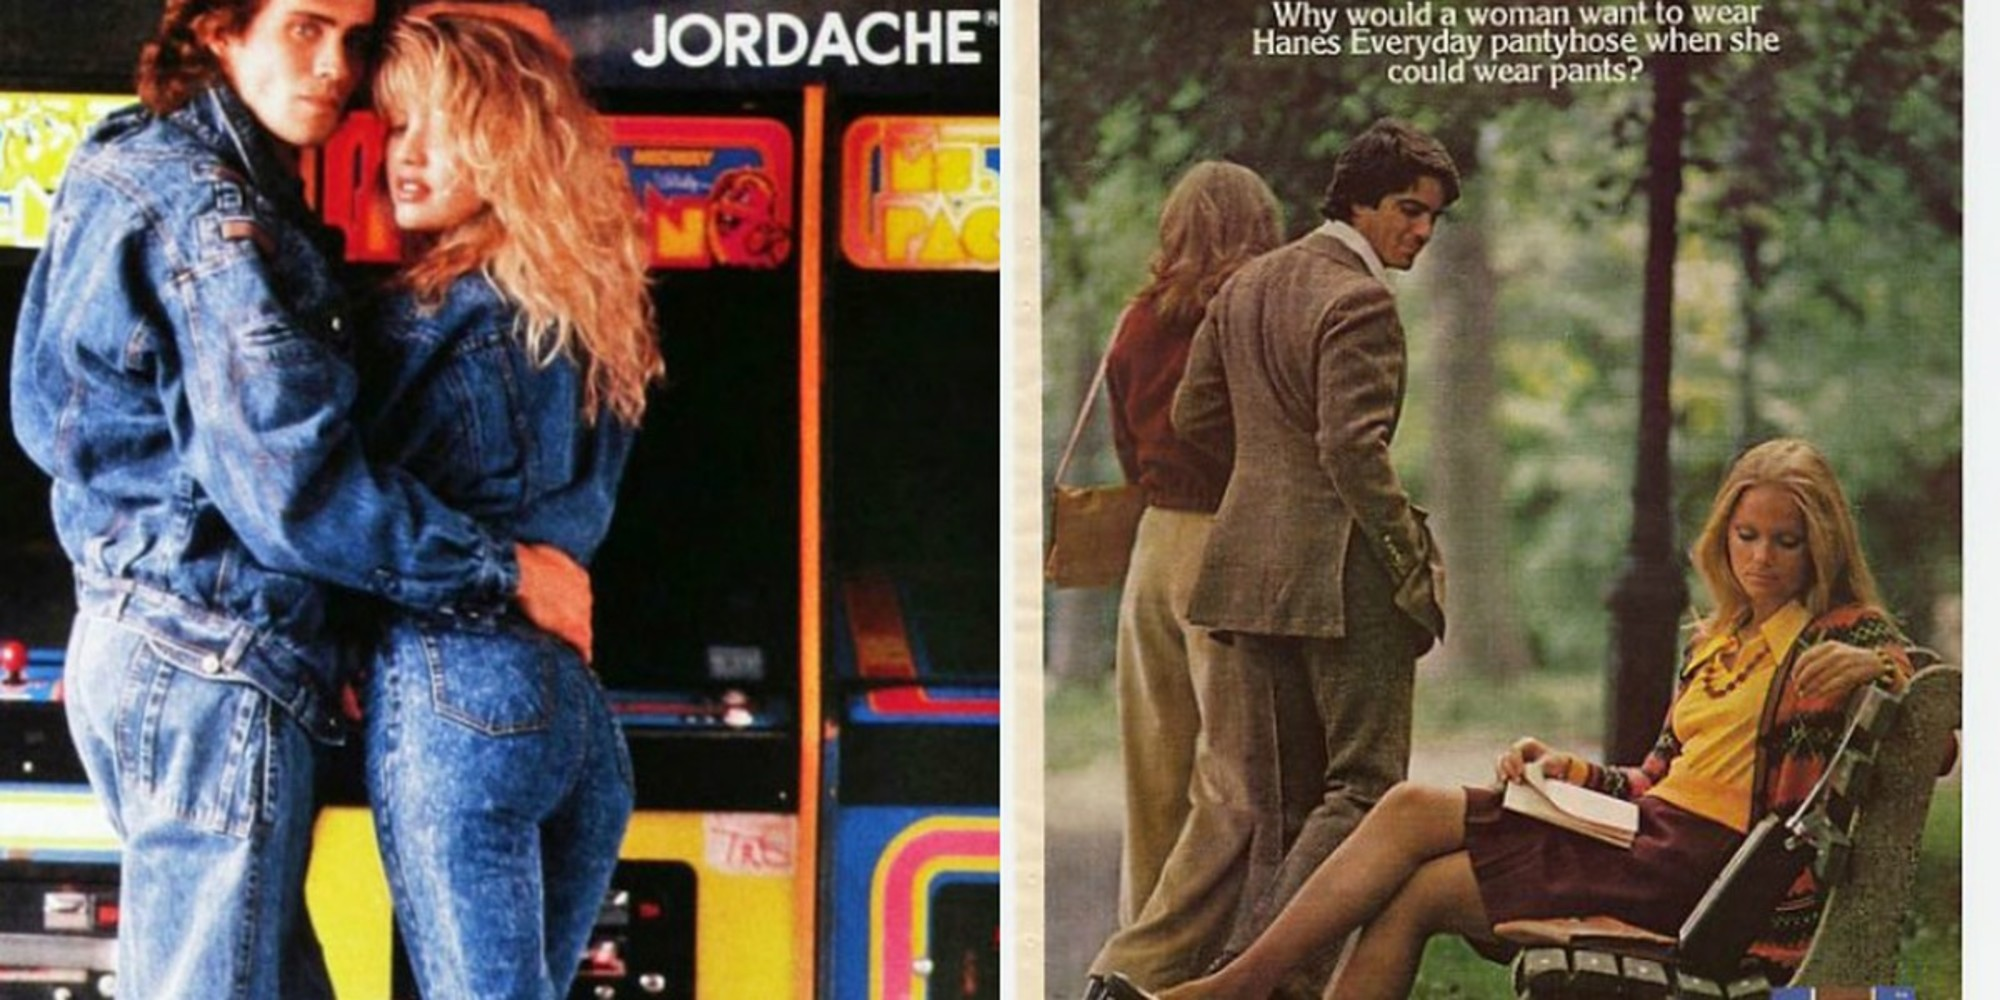 Check Out These Totally Rad Clothing Commercials From The 80s! - photo #26